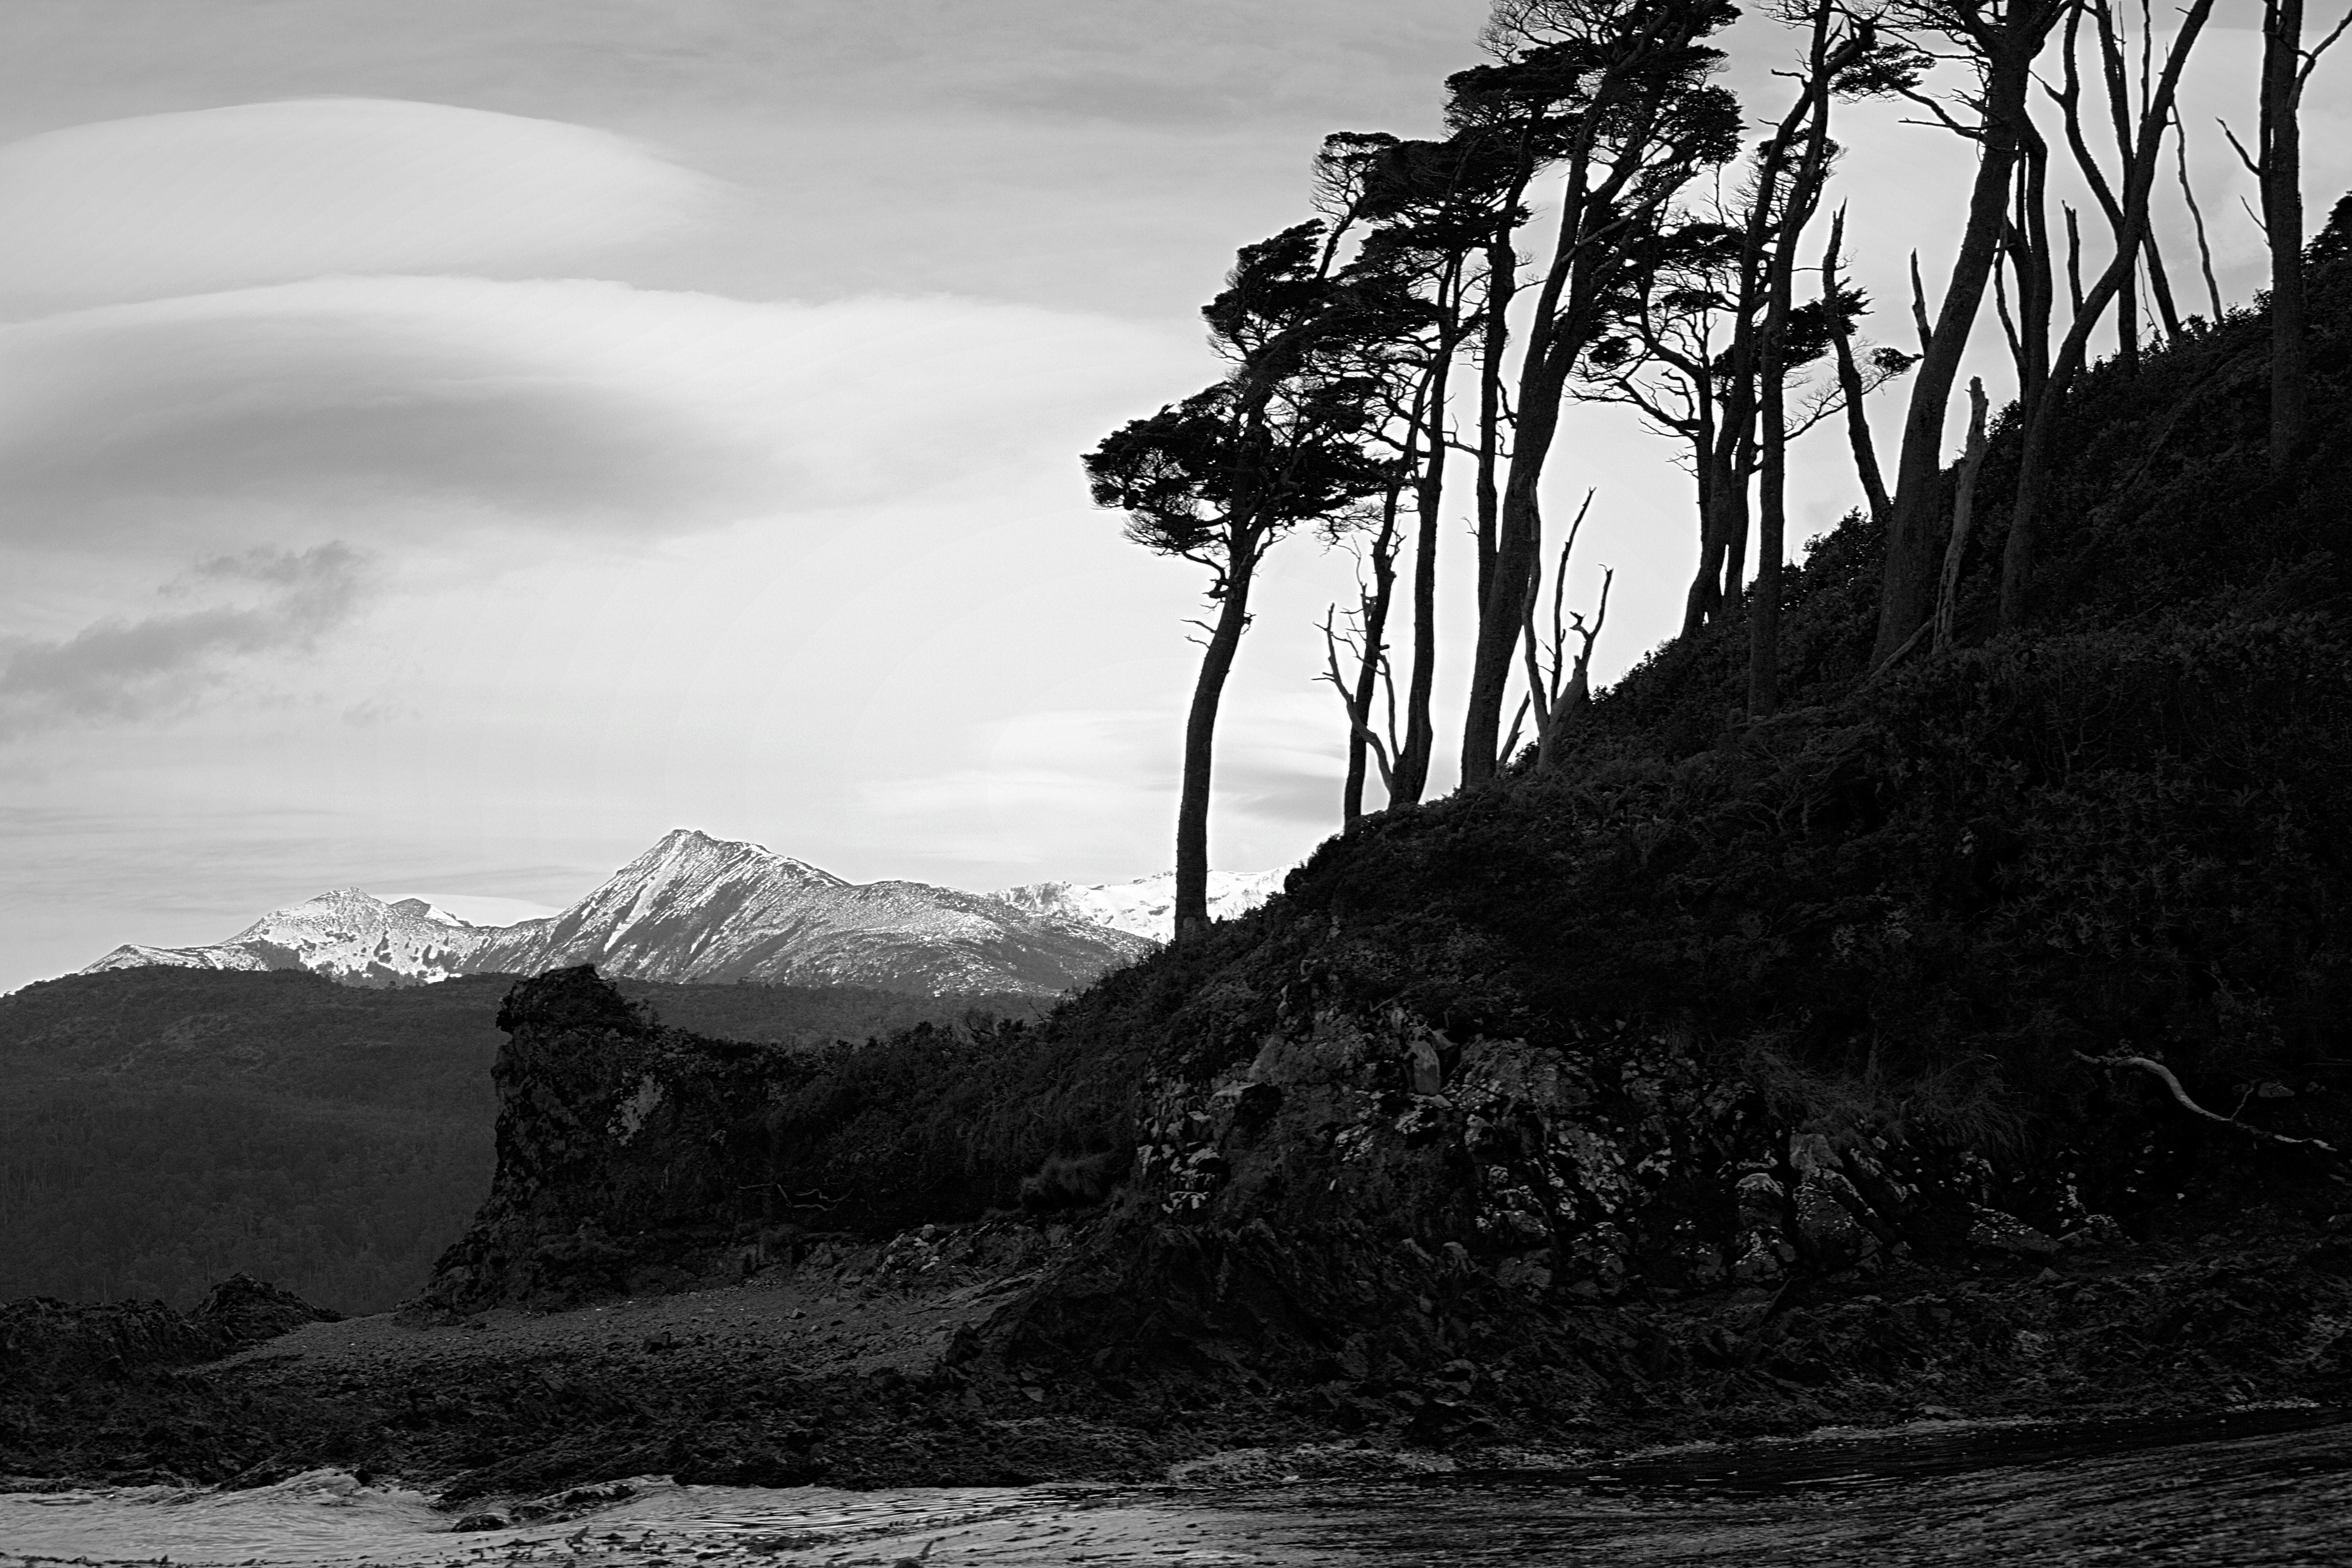 Grayscale Photo of Trees Near Body of Water, Beach, Outdoors, Water, Trees, HQ Photo